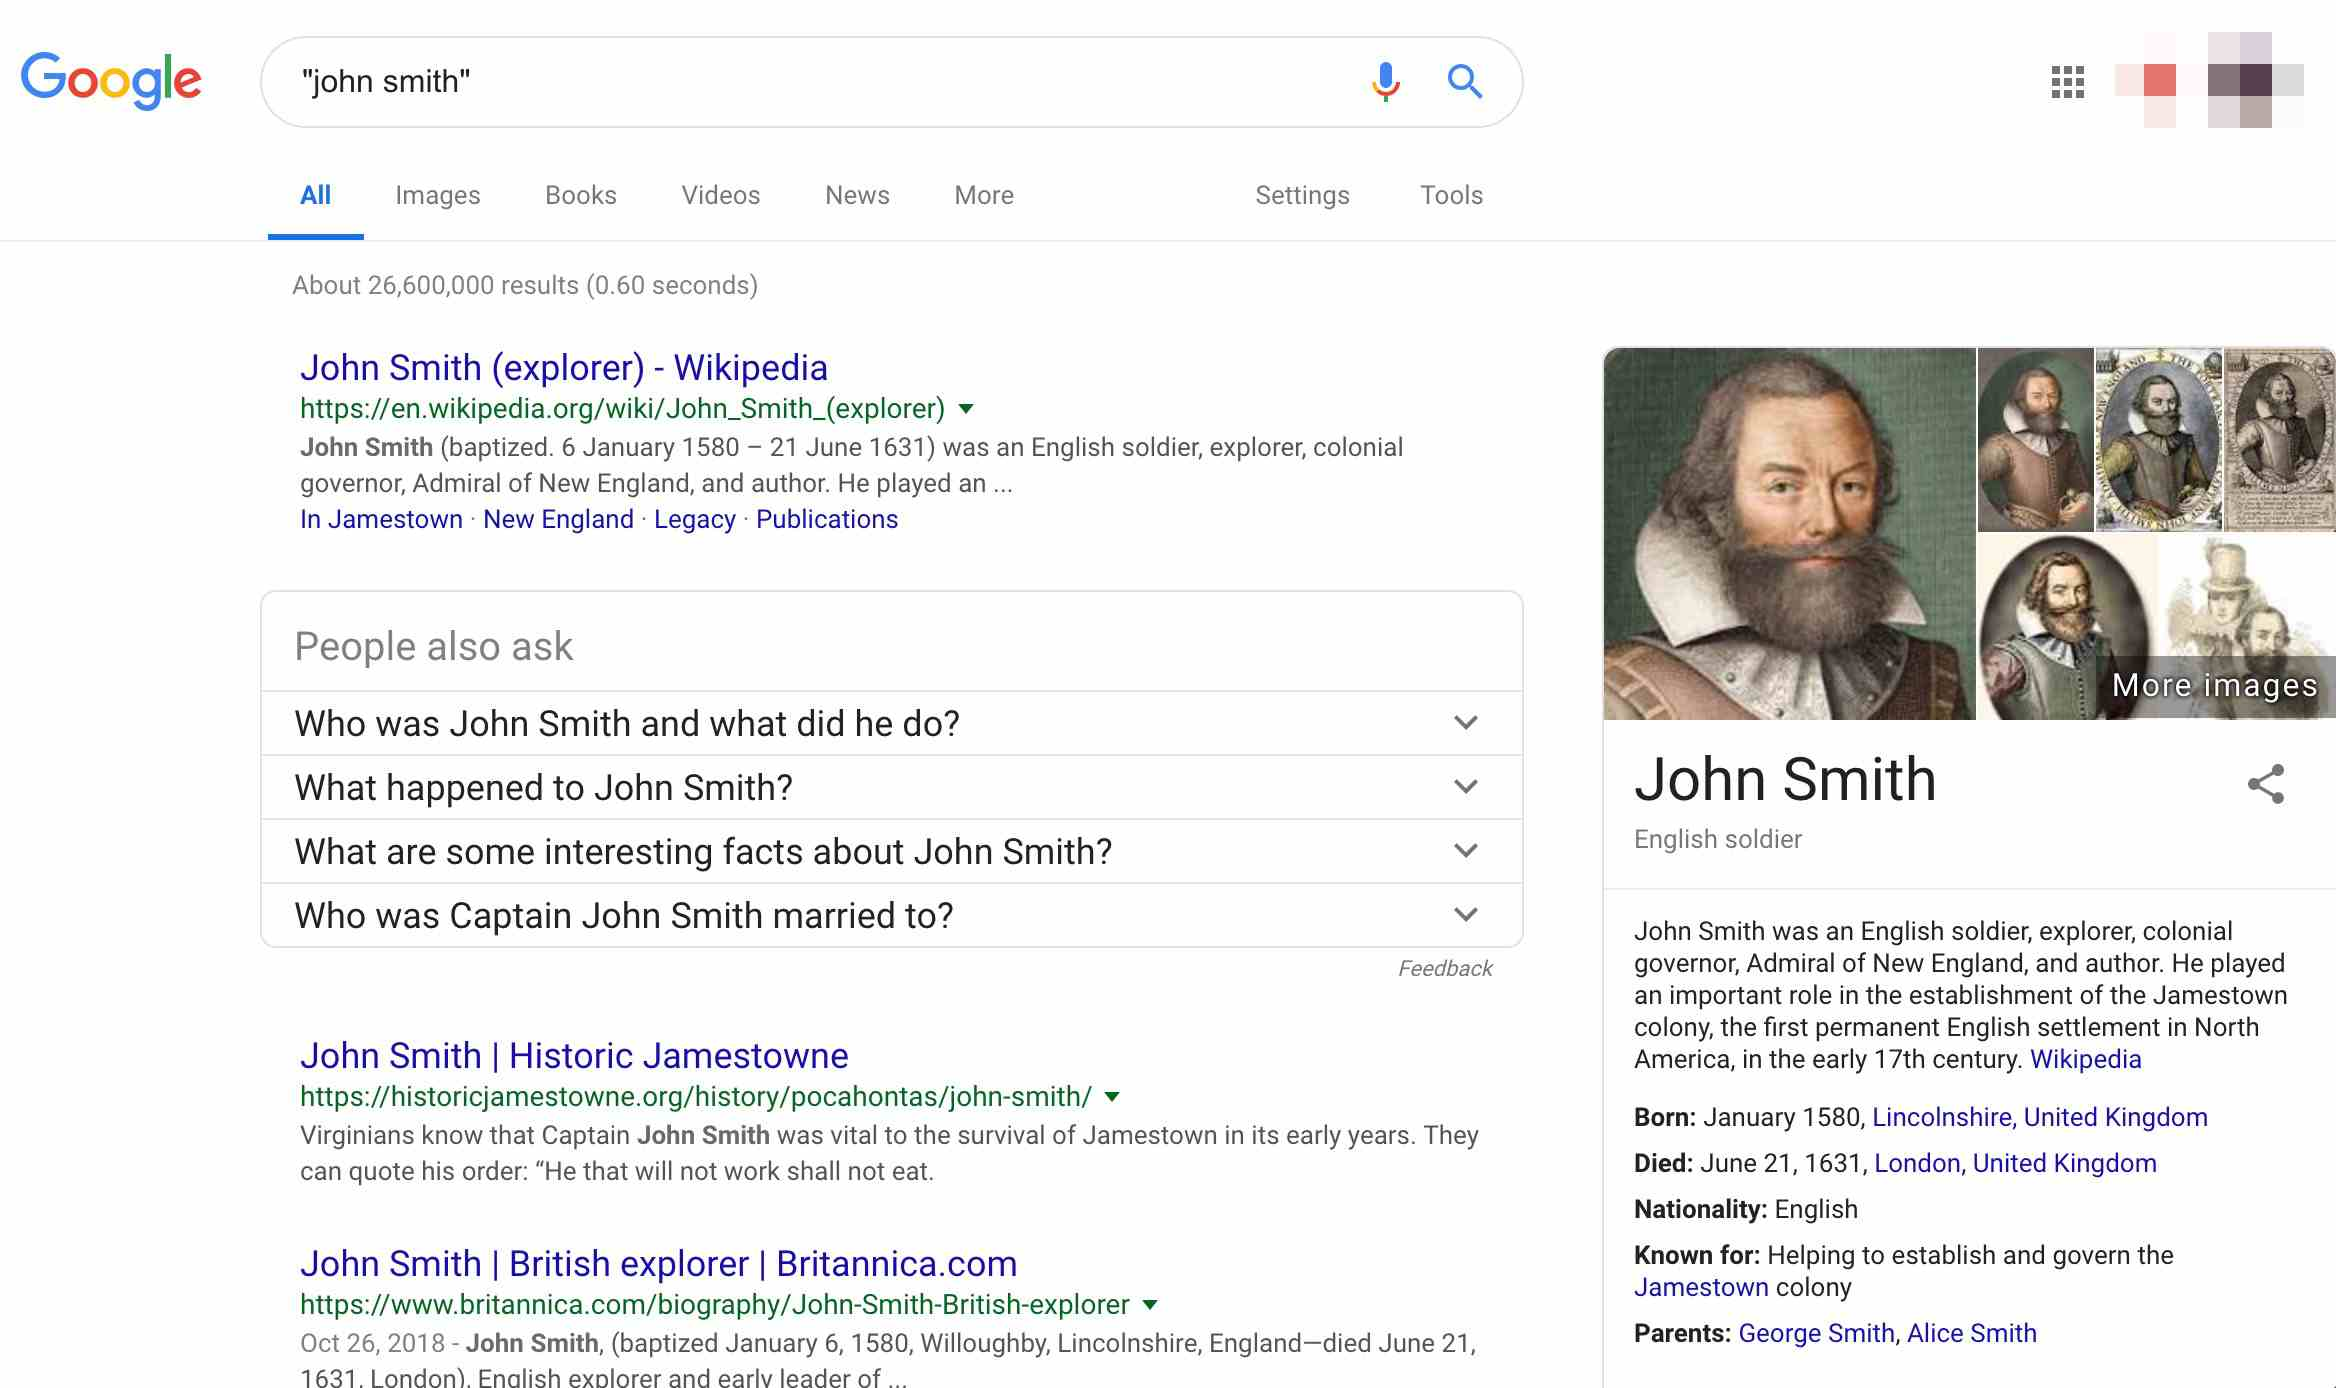 Google results page for